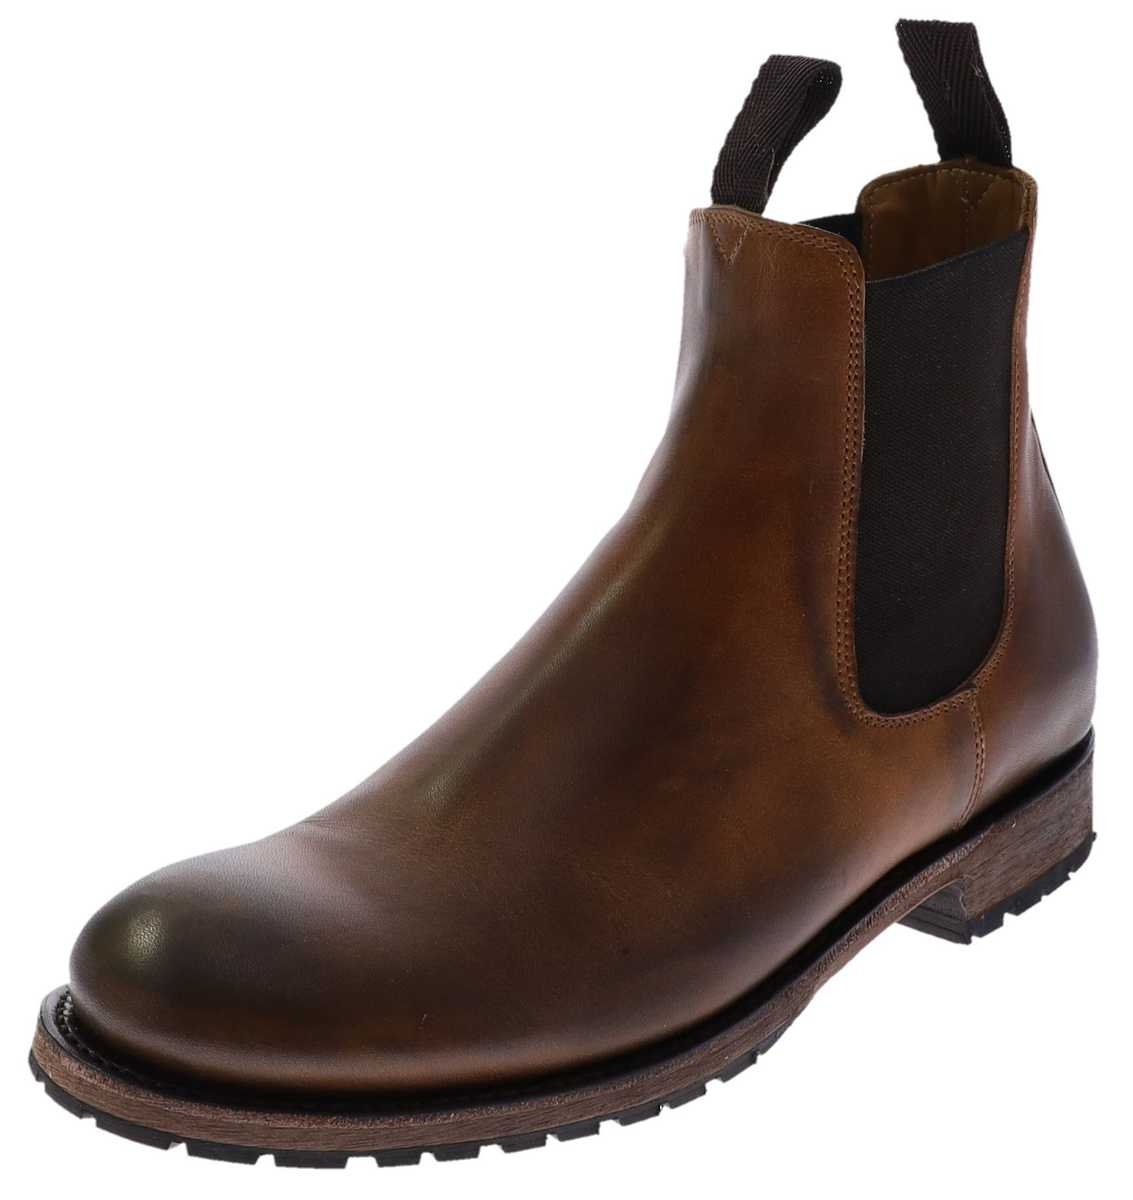 Sendra Boots 5595 Tang Fashion ankle boot - Brown